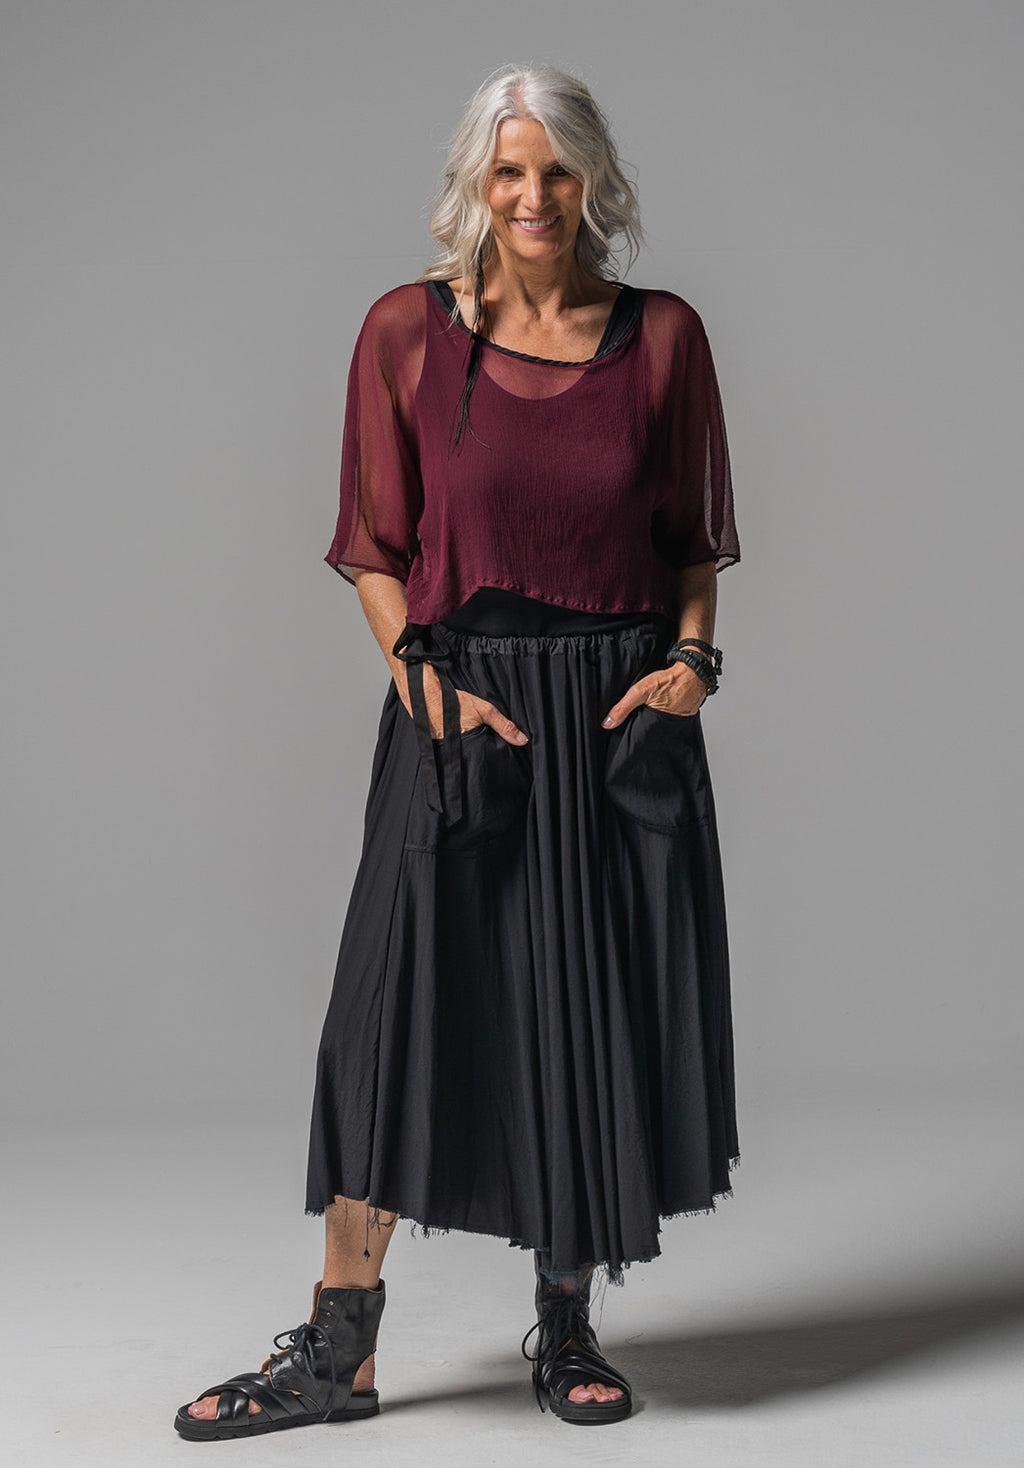 womens clothing online, womens clothing, eco fashion australia, ethical fashion australia, australian fashion designers